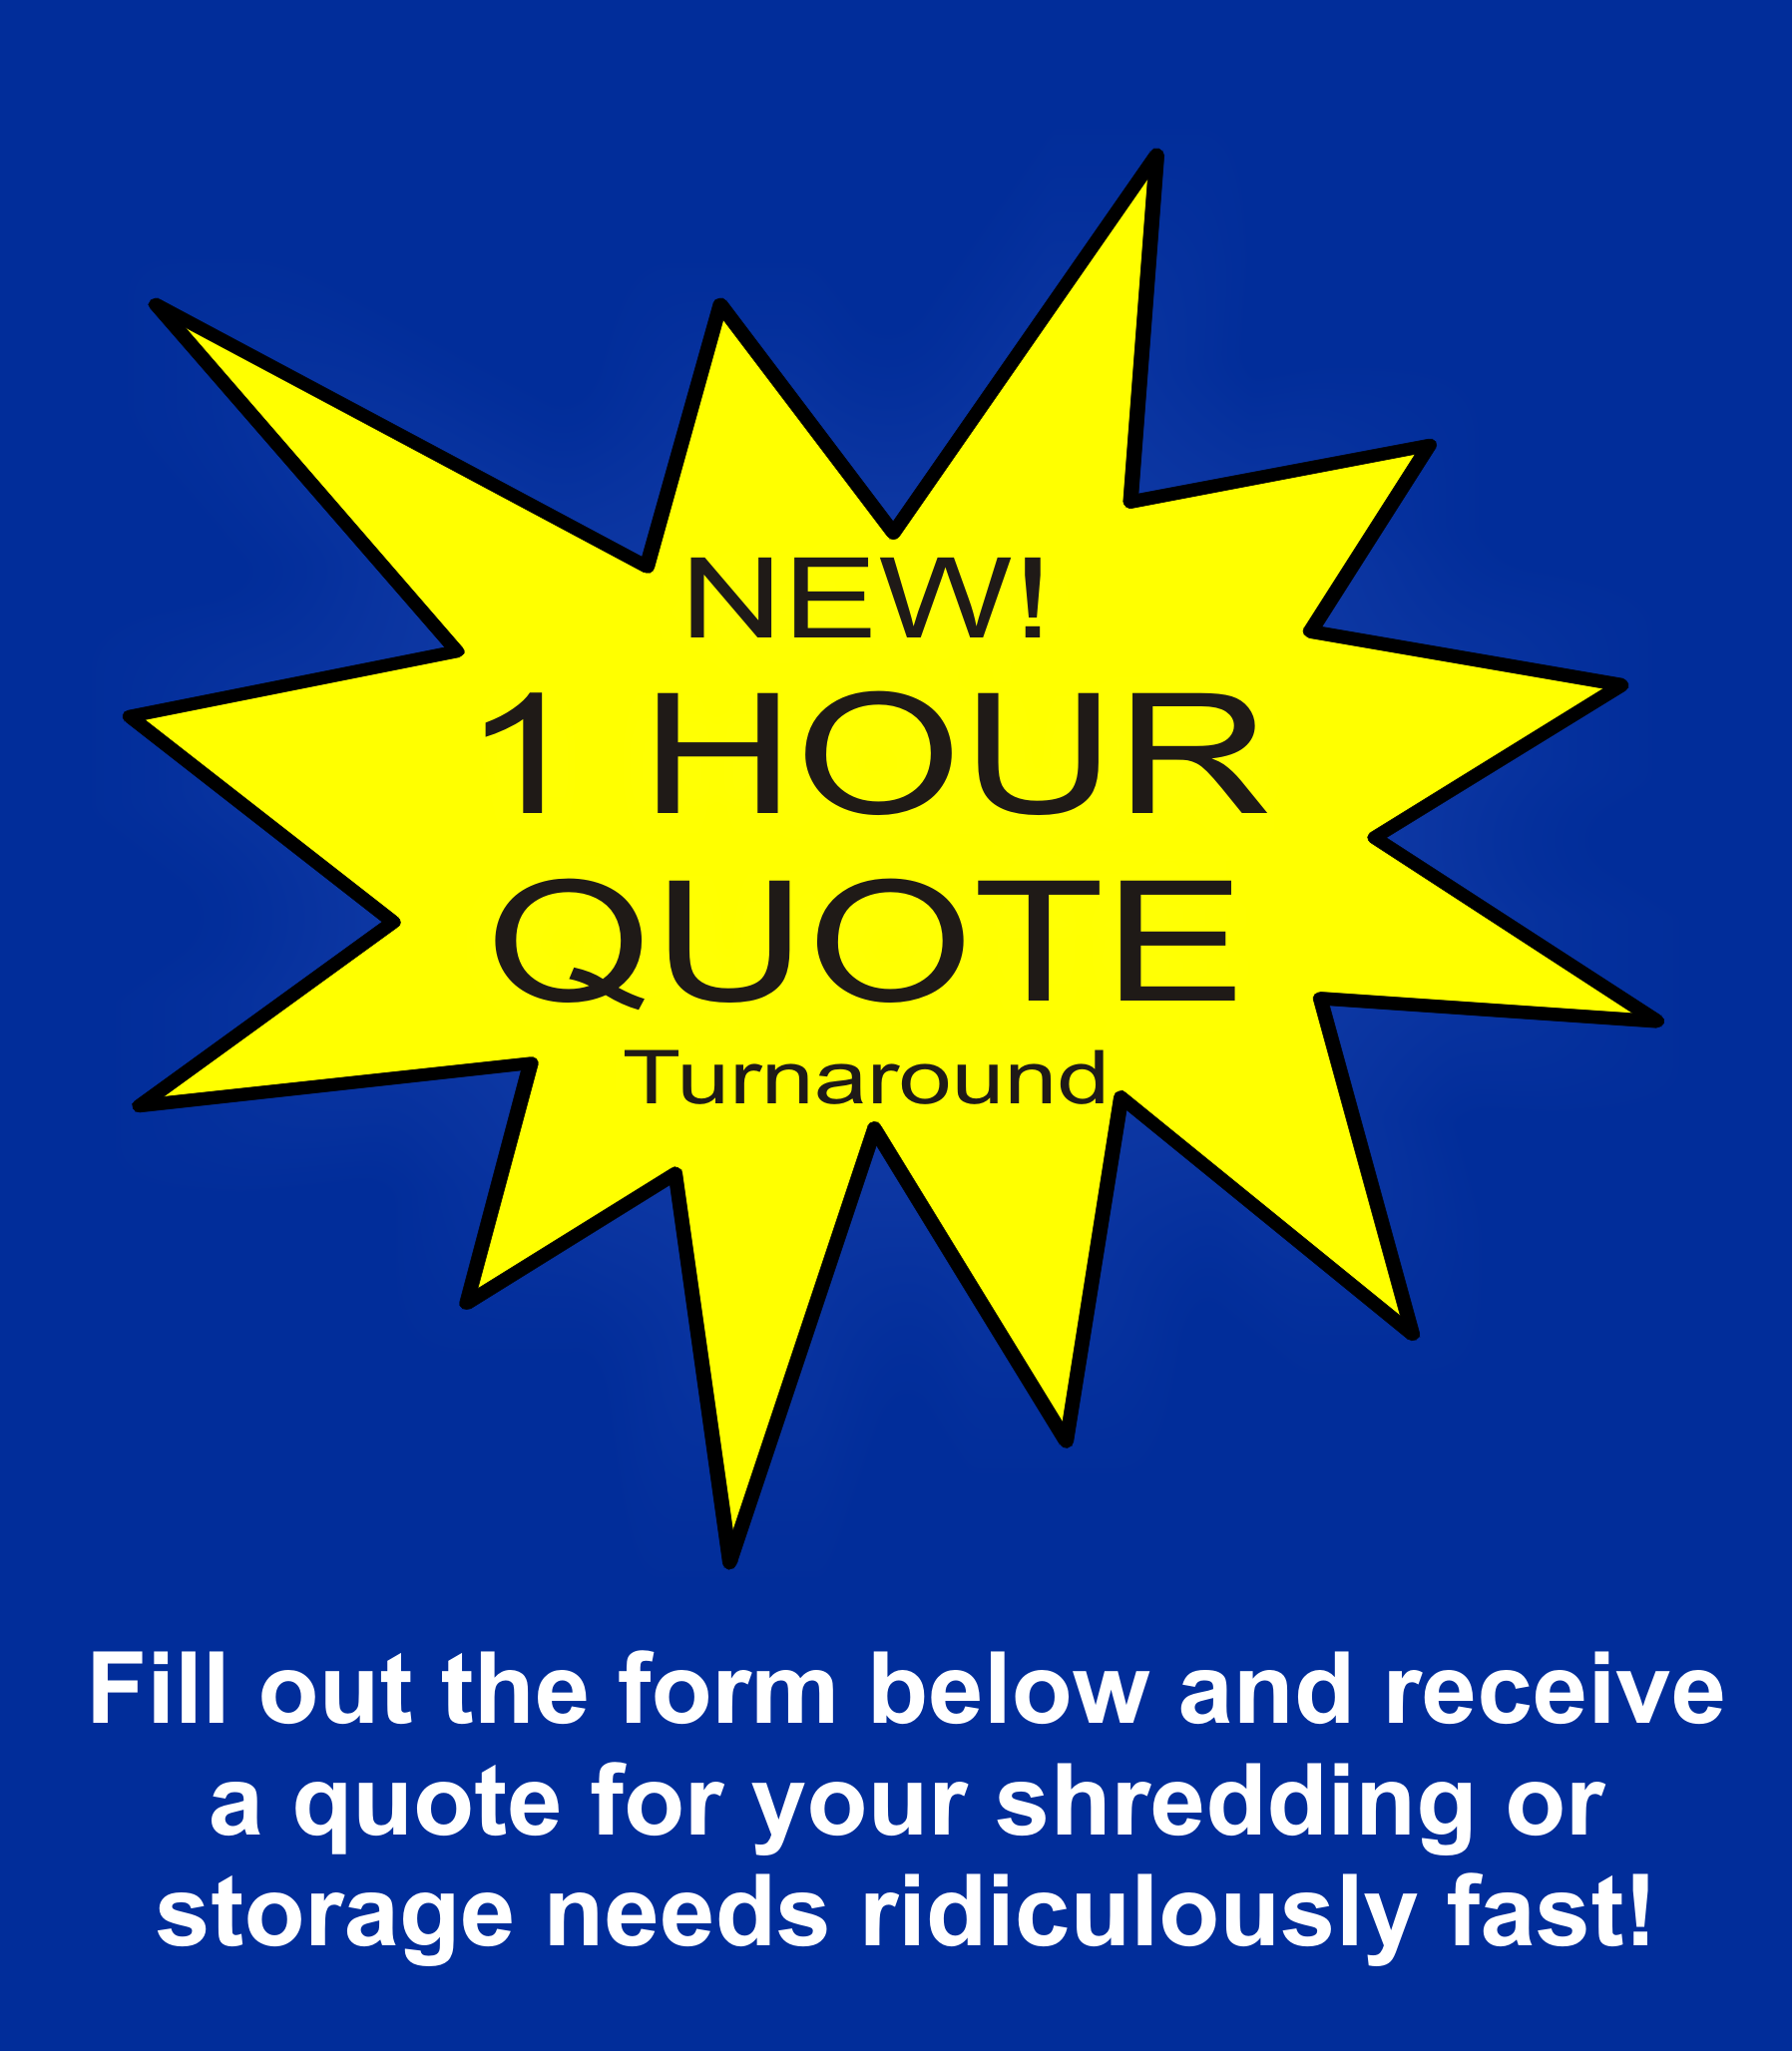 Fast document shredding quote